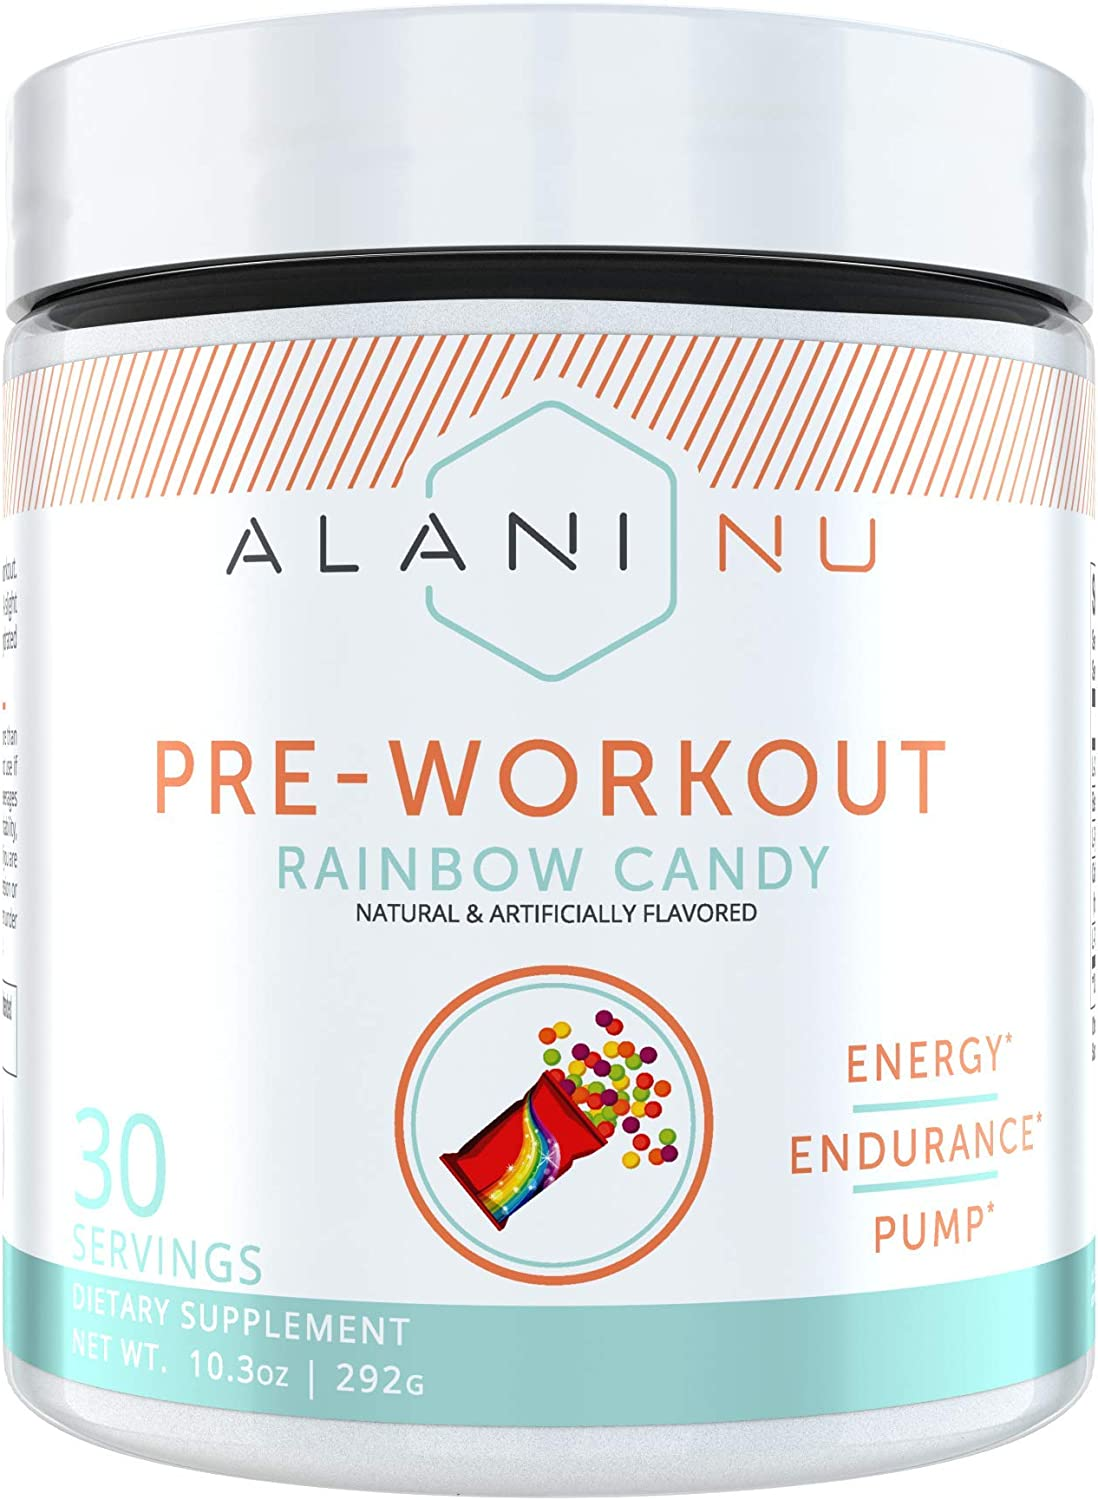 Alani Nu Pre-Workout Supplement Powder for Energy, Endurance, and Pump, Rainbow Candy, 30 Servings